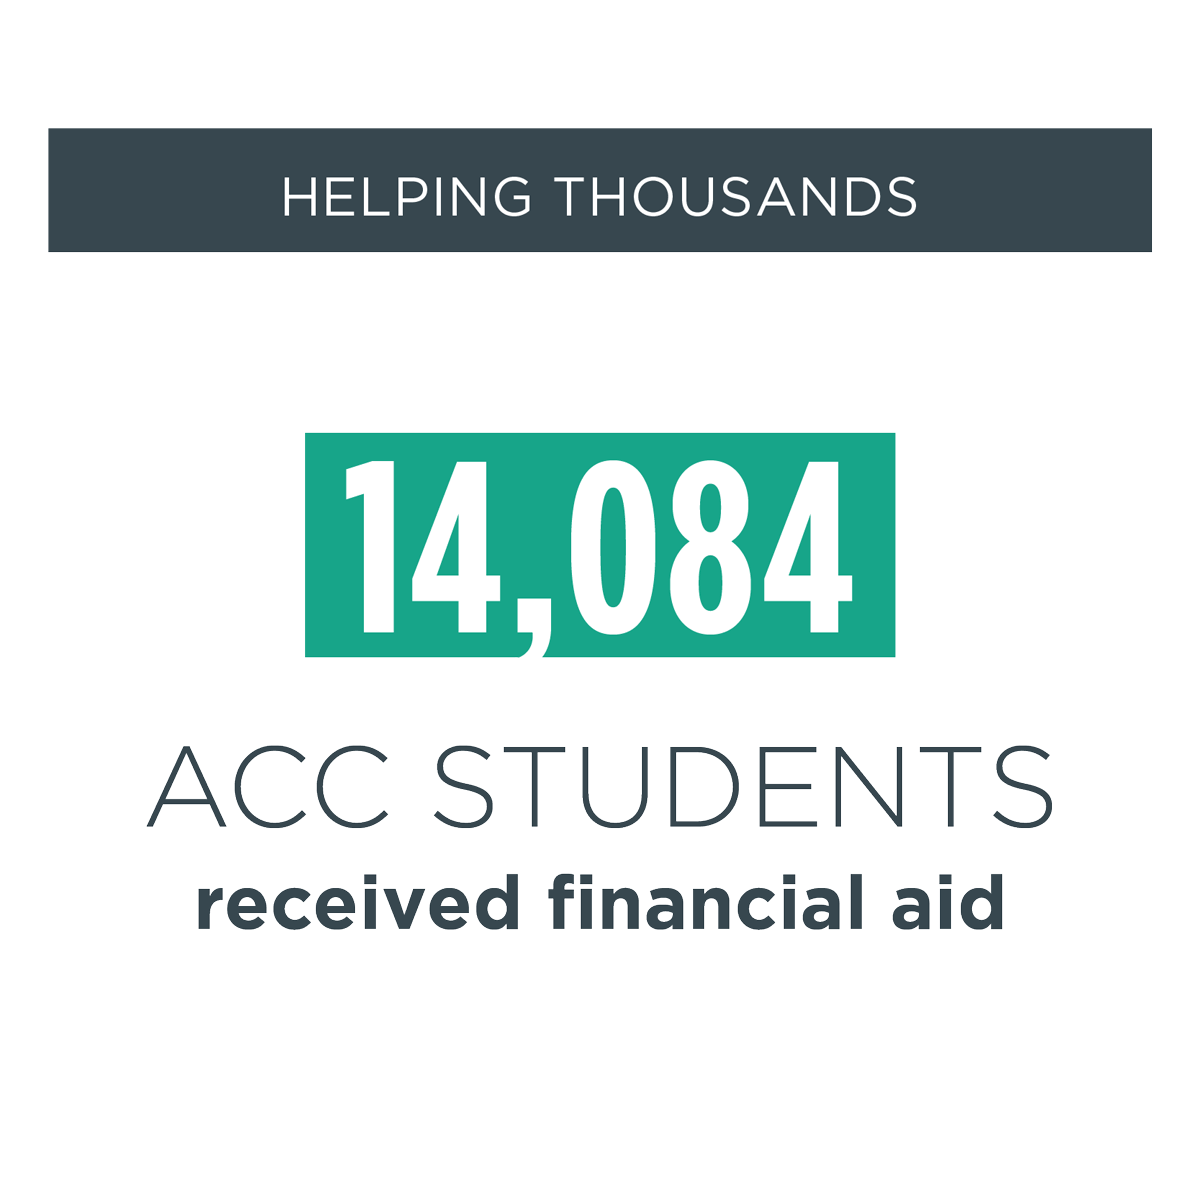 helping thousands -- 14,084 acc students received financial aid during the 2015 - 2016 academic year